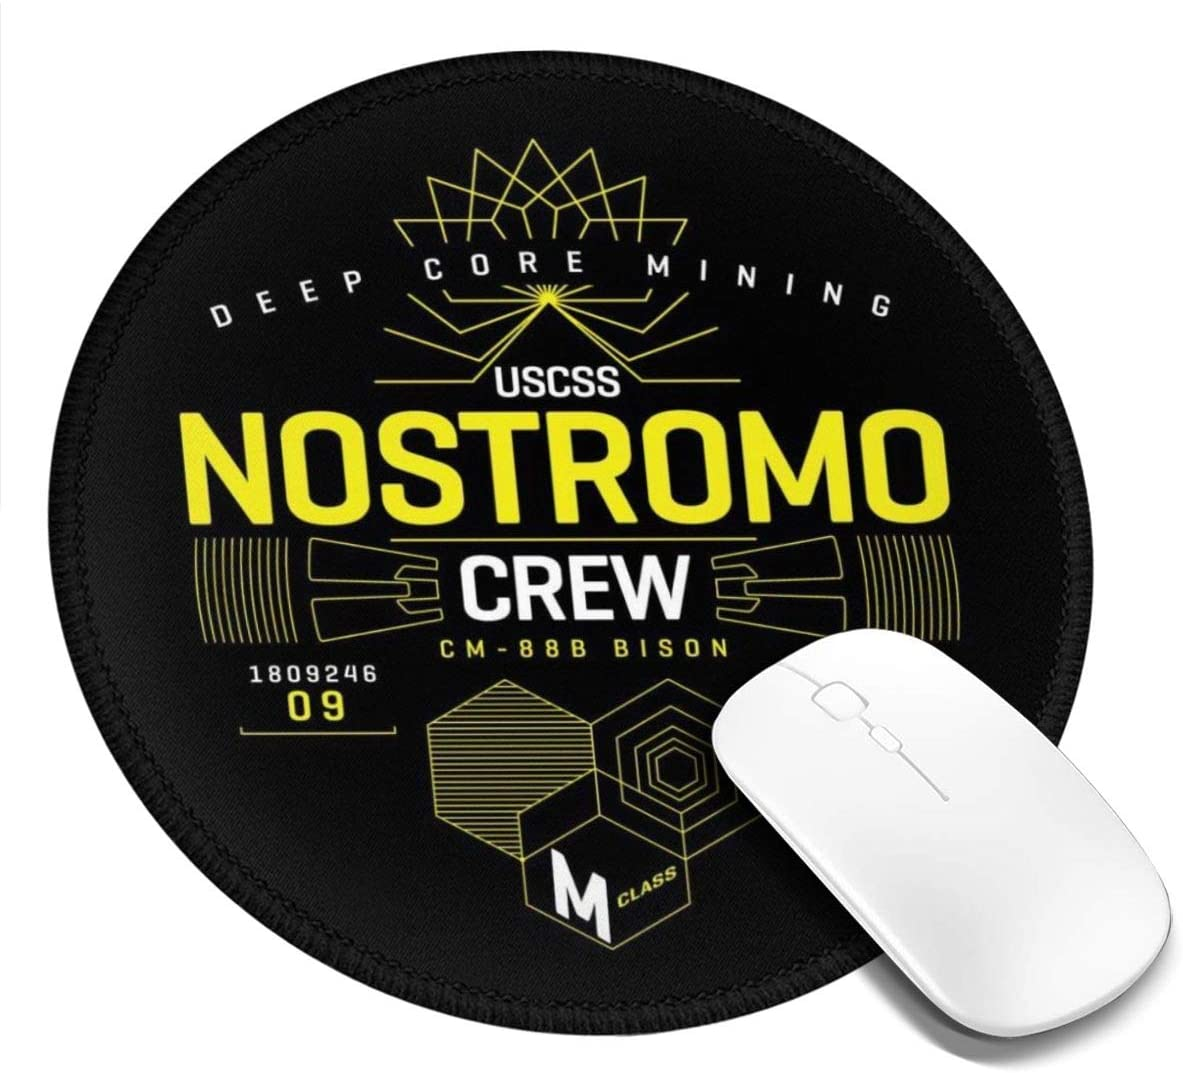 Nostromo Crew Customized Designs Non-Slip Rubber Base Gaming Mouse Pads for Mac,7.9x7.9 in, Pc, Computers. Ideal for Working Or Game